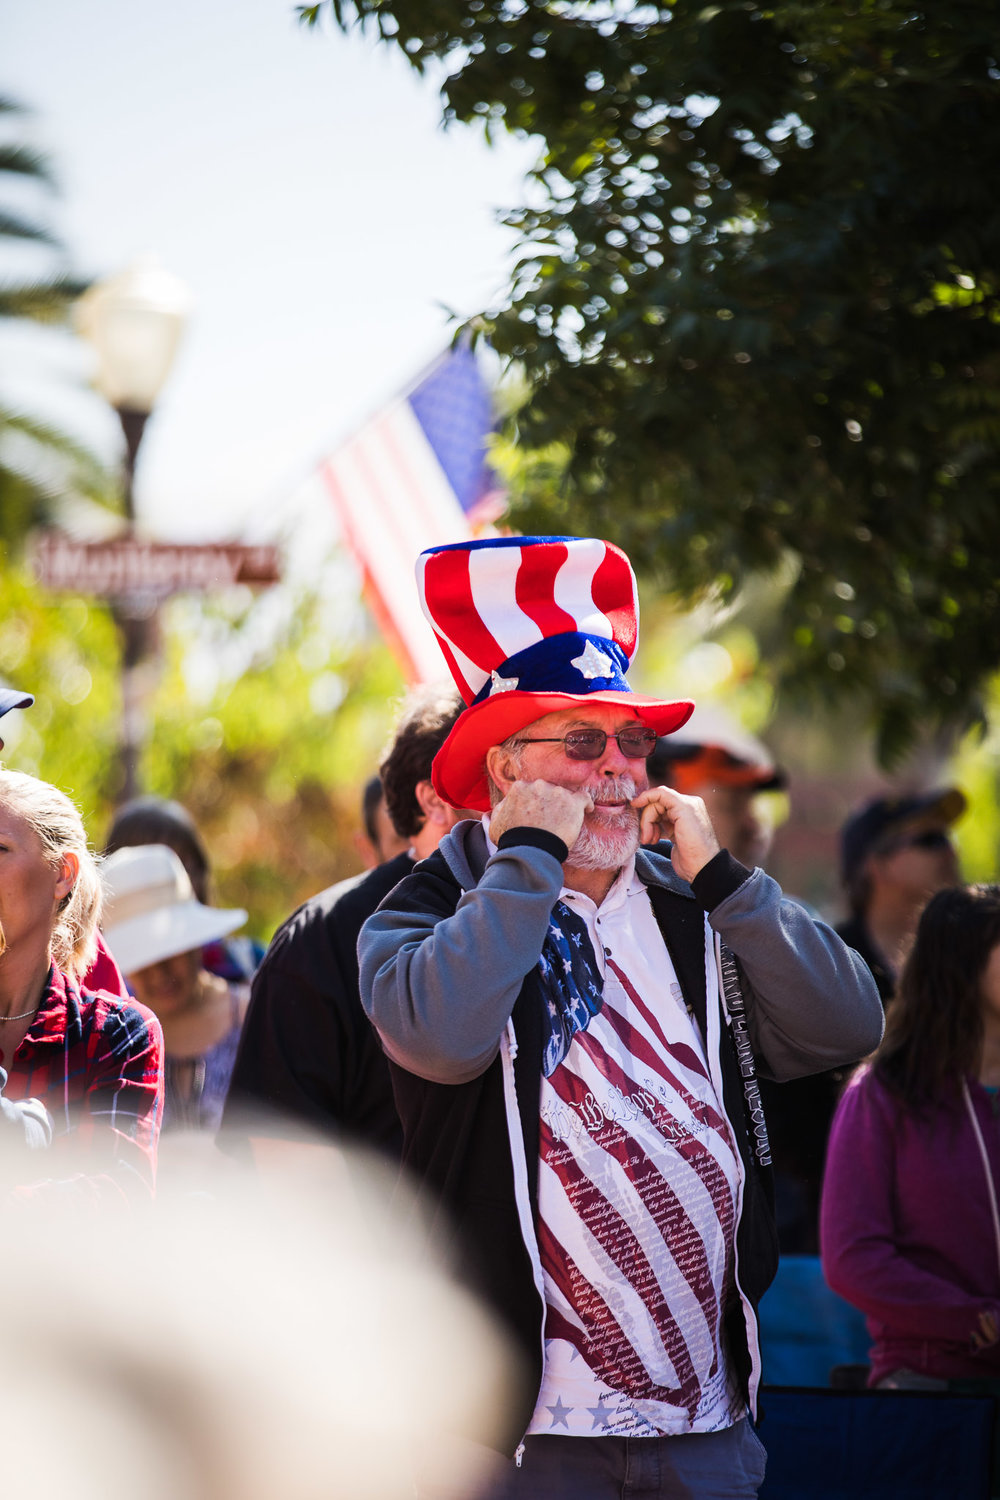 Archer_Inspired_Photography_Morgan_Hill_California_4th_of_july_parade-42.jpg